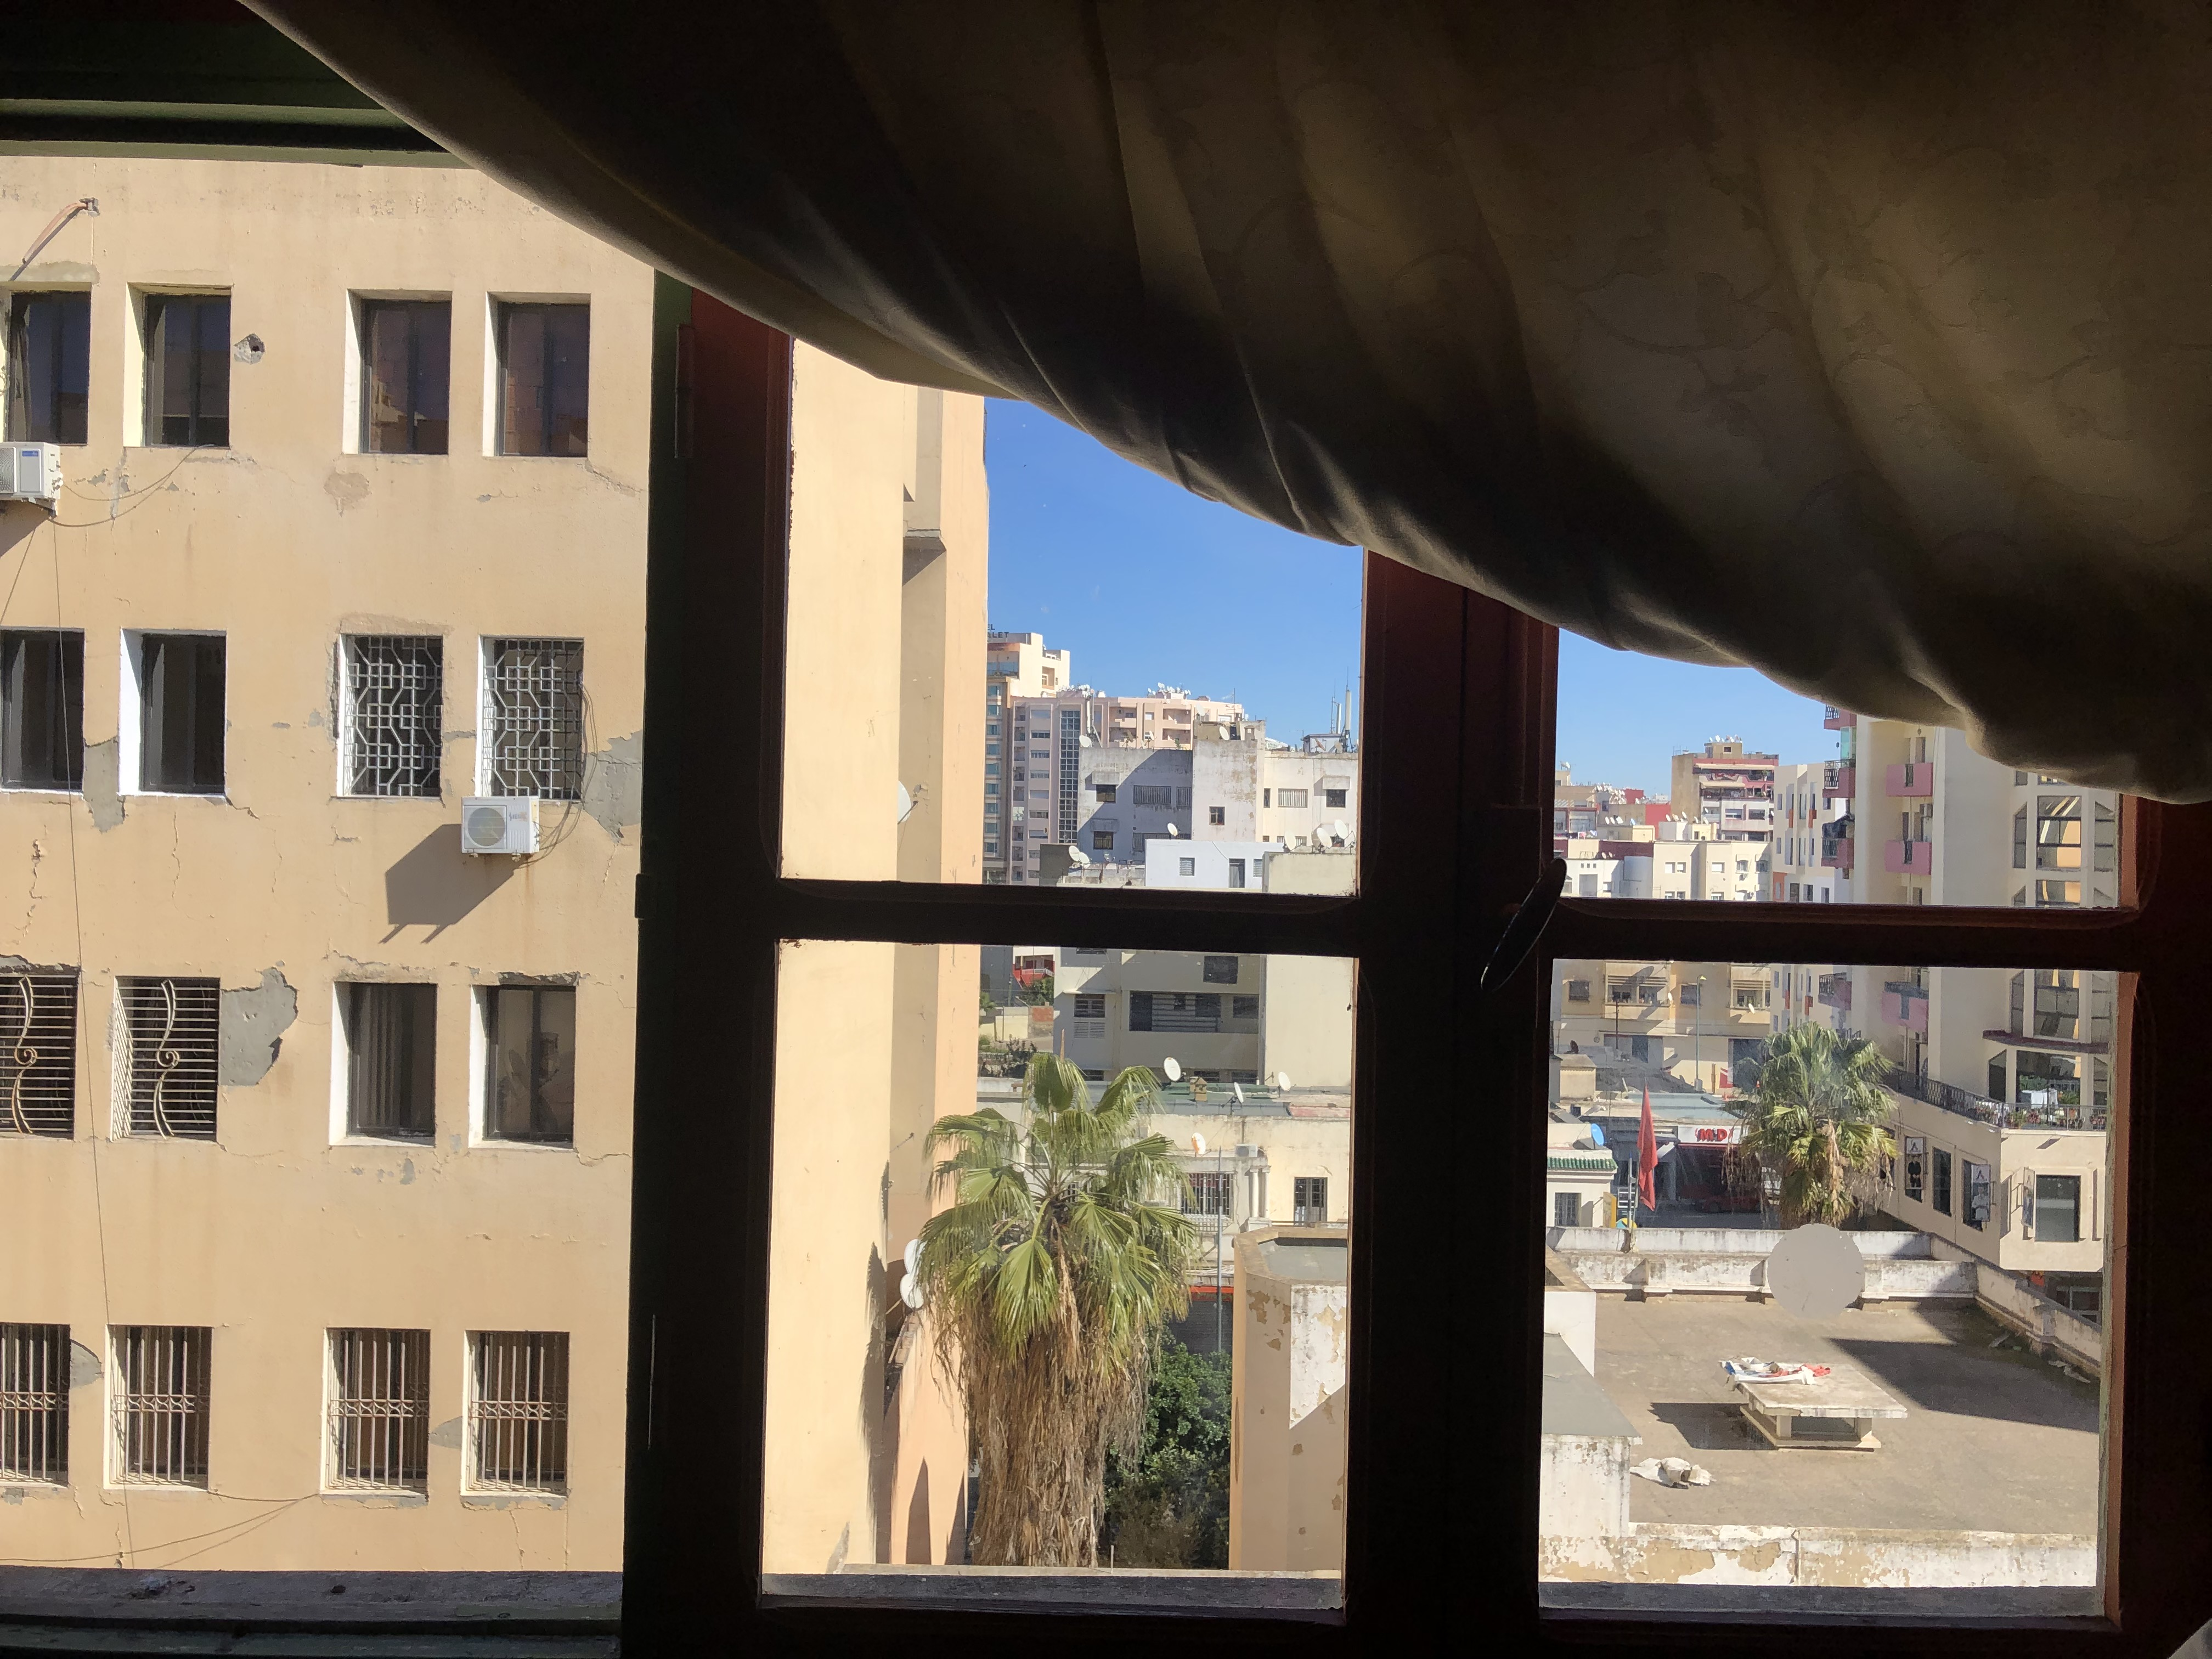 View of Meknes from a window